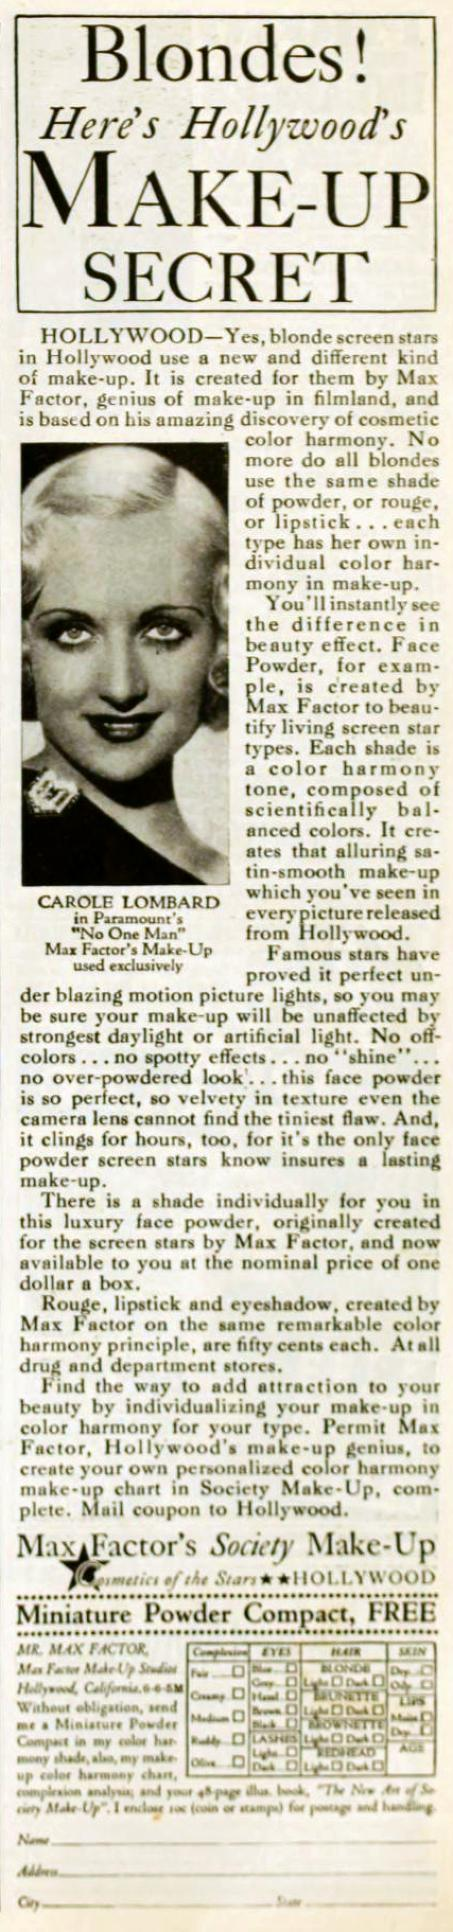 carole lombard picture play june 1932a ad